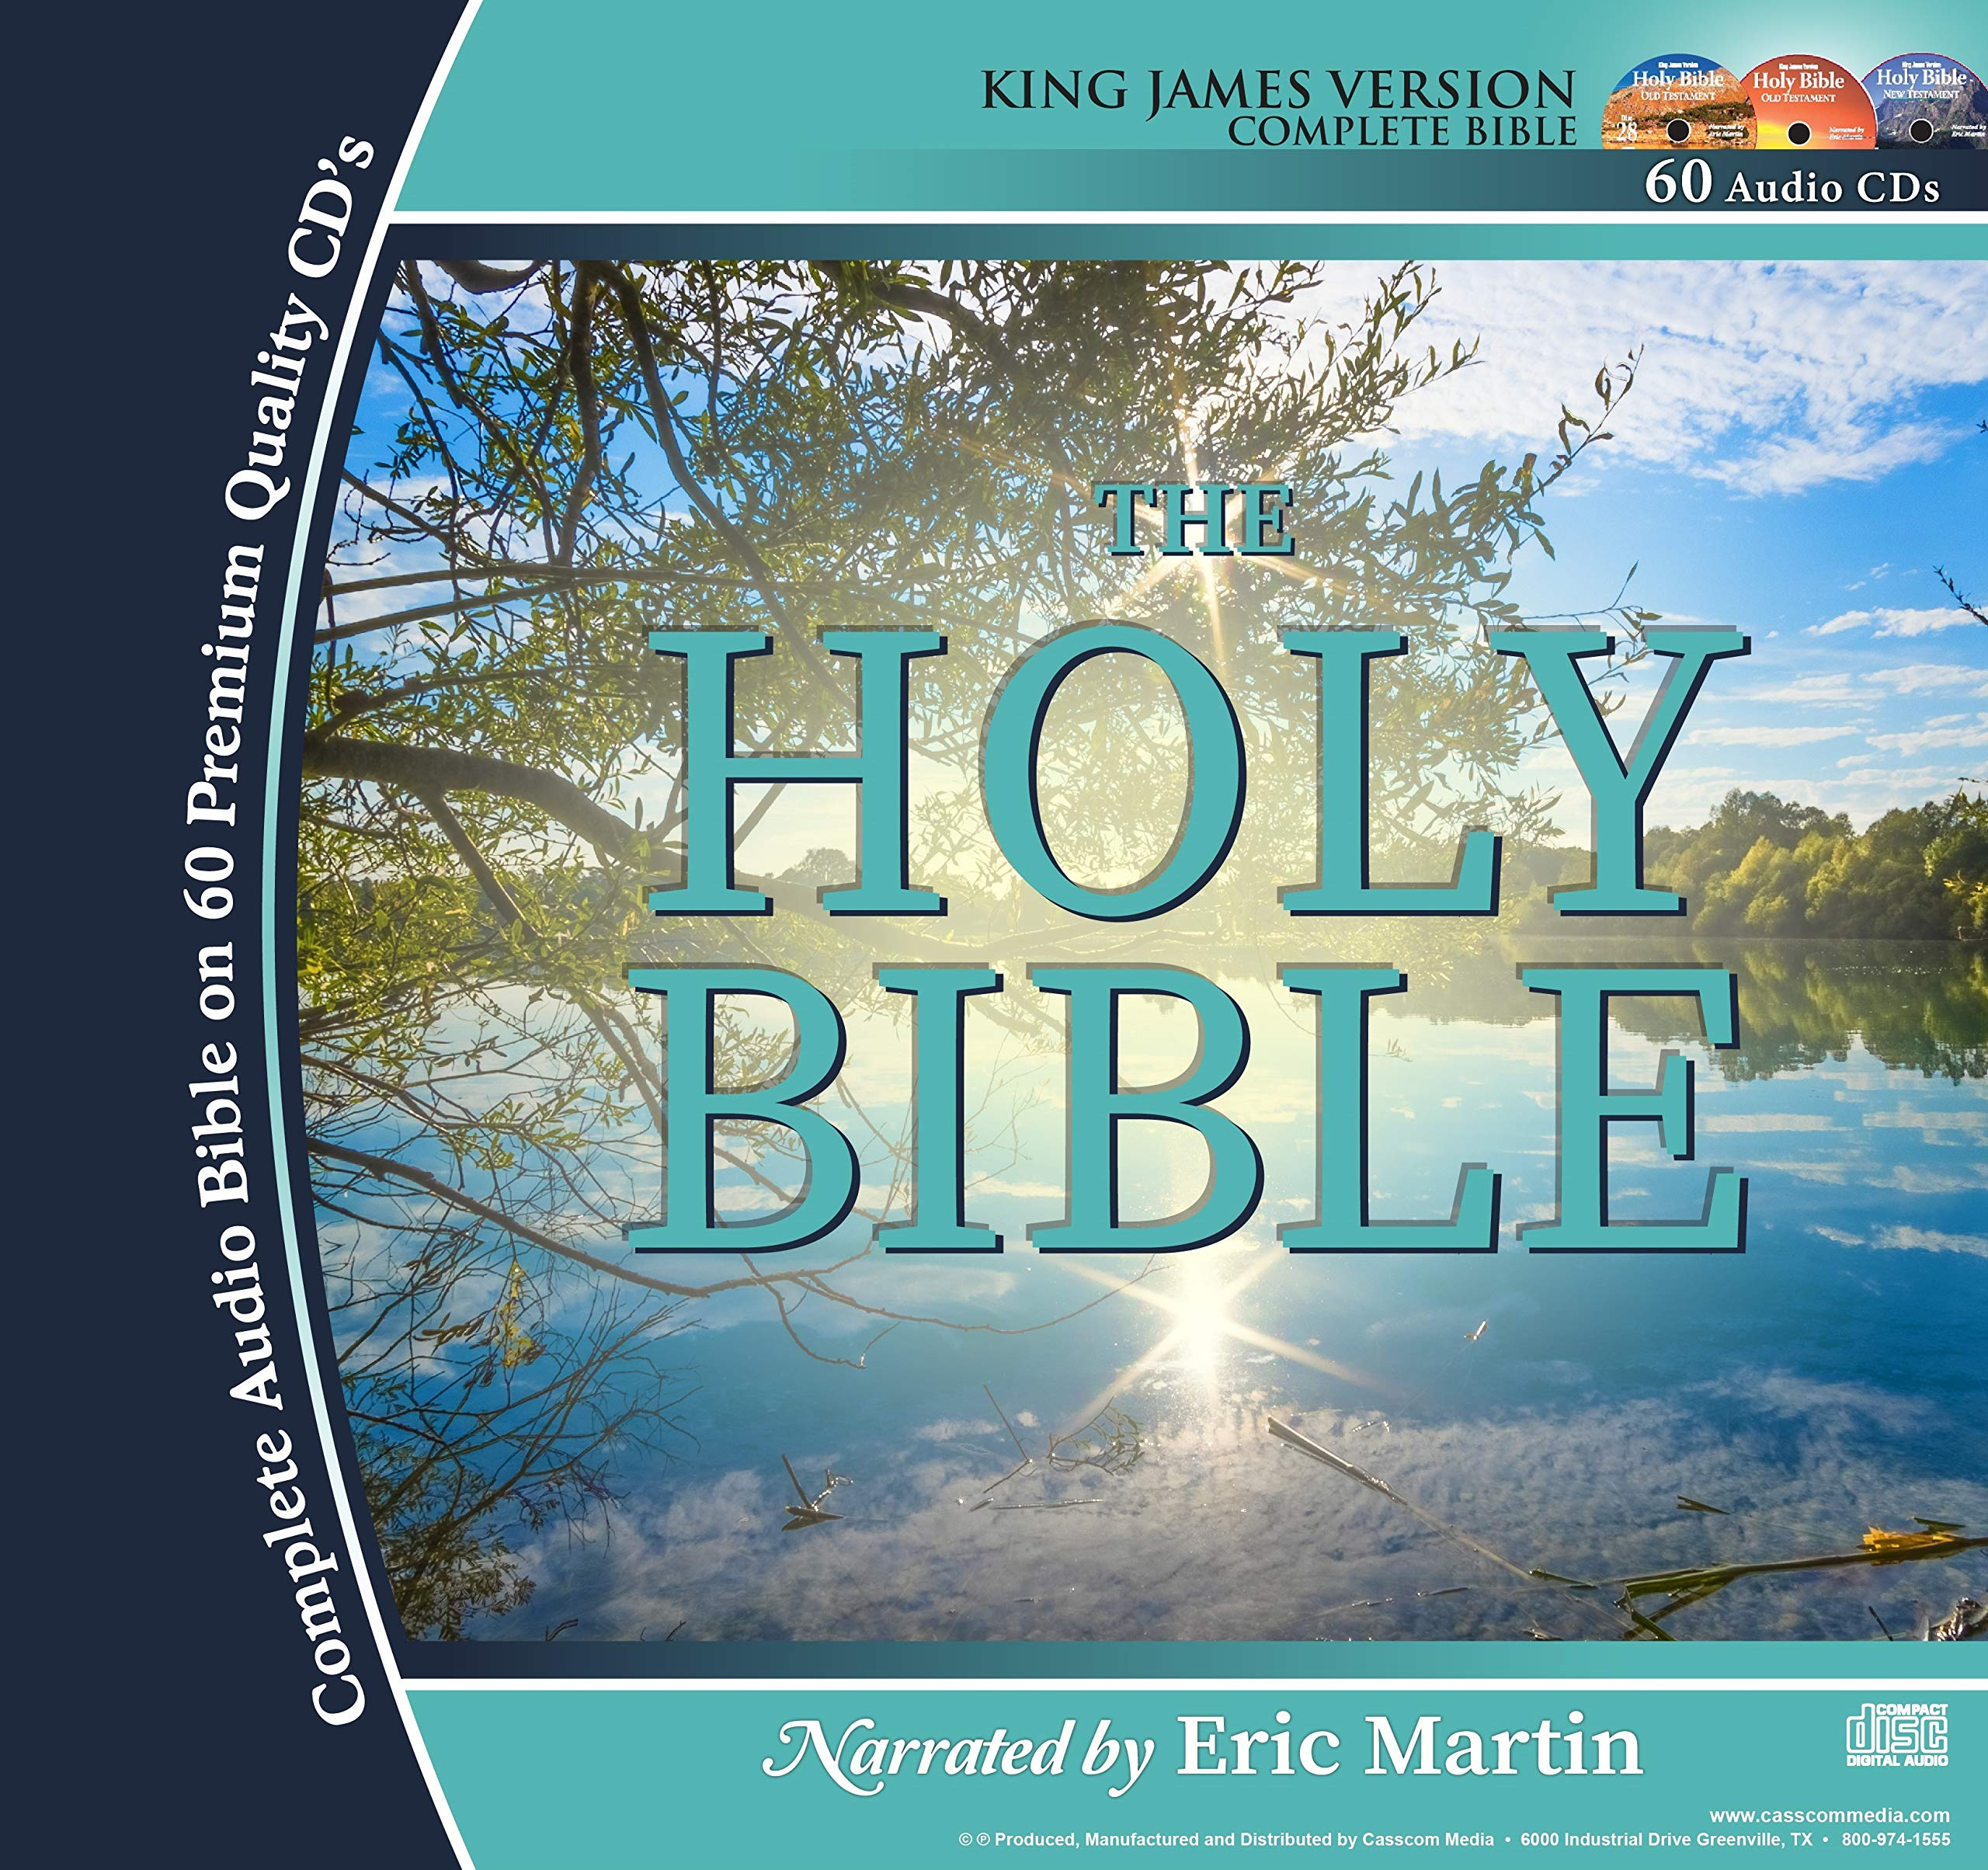 2 Complete King James Version Audio Bibles in one Product! -60 CD